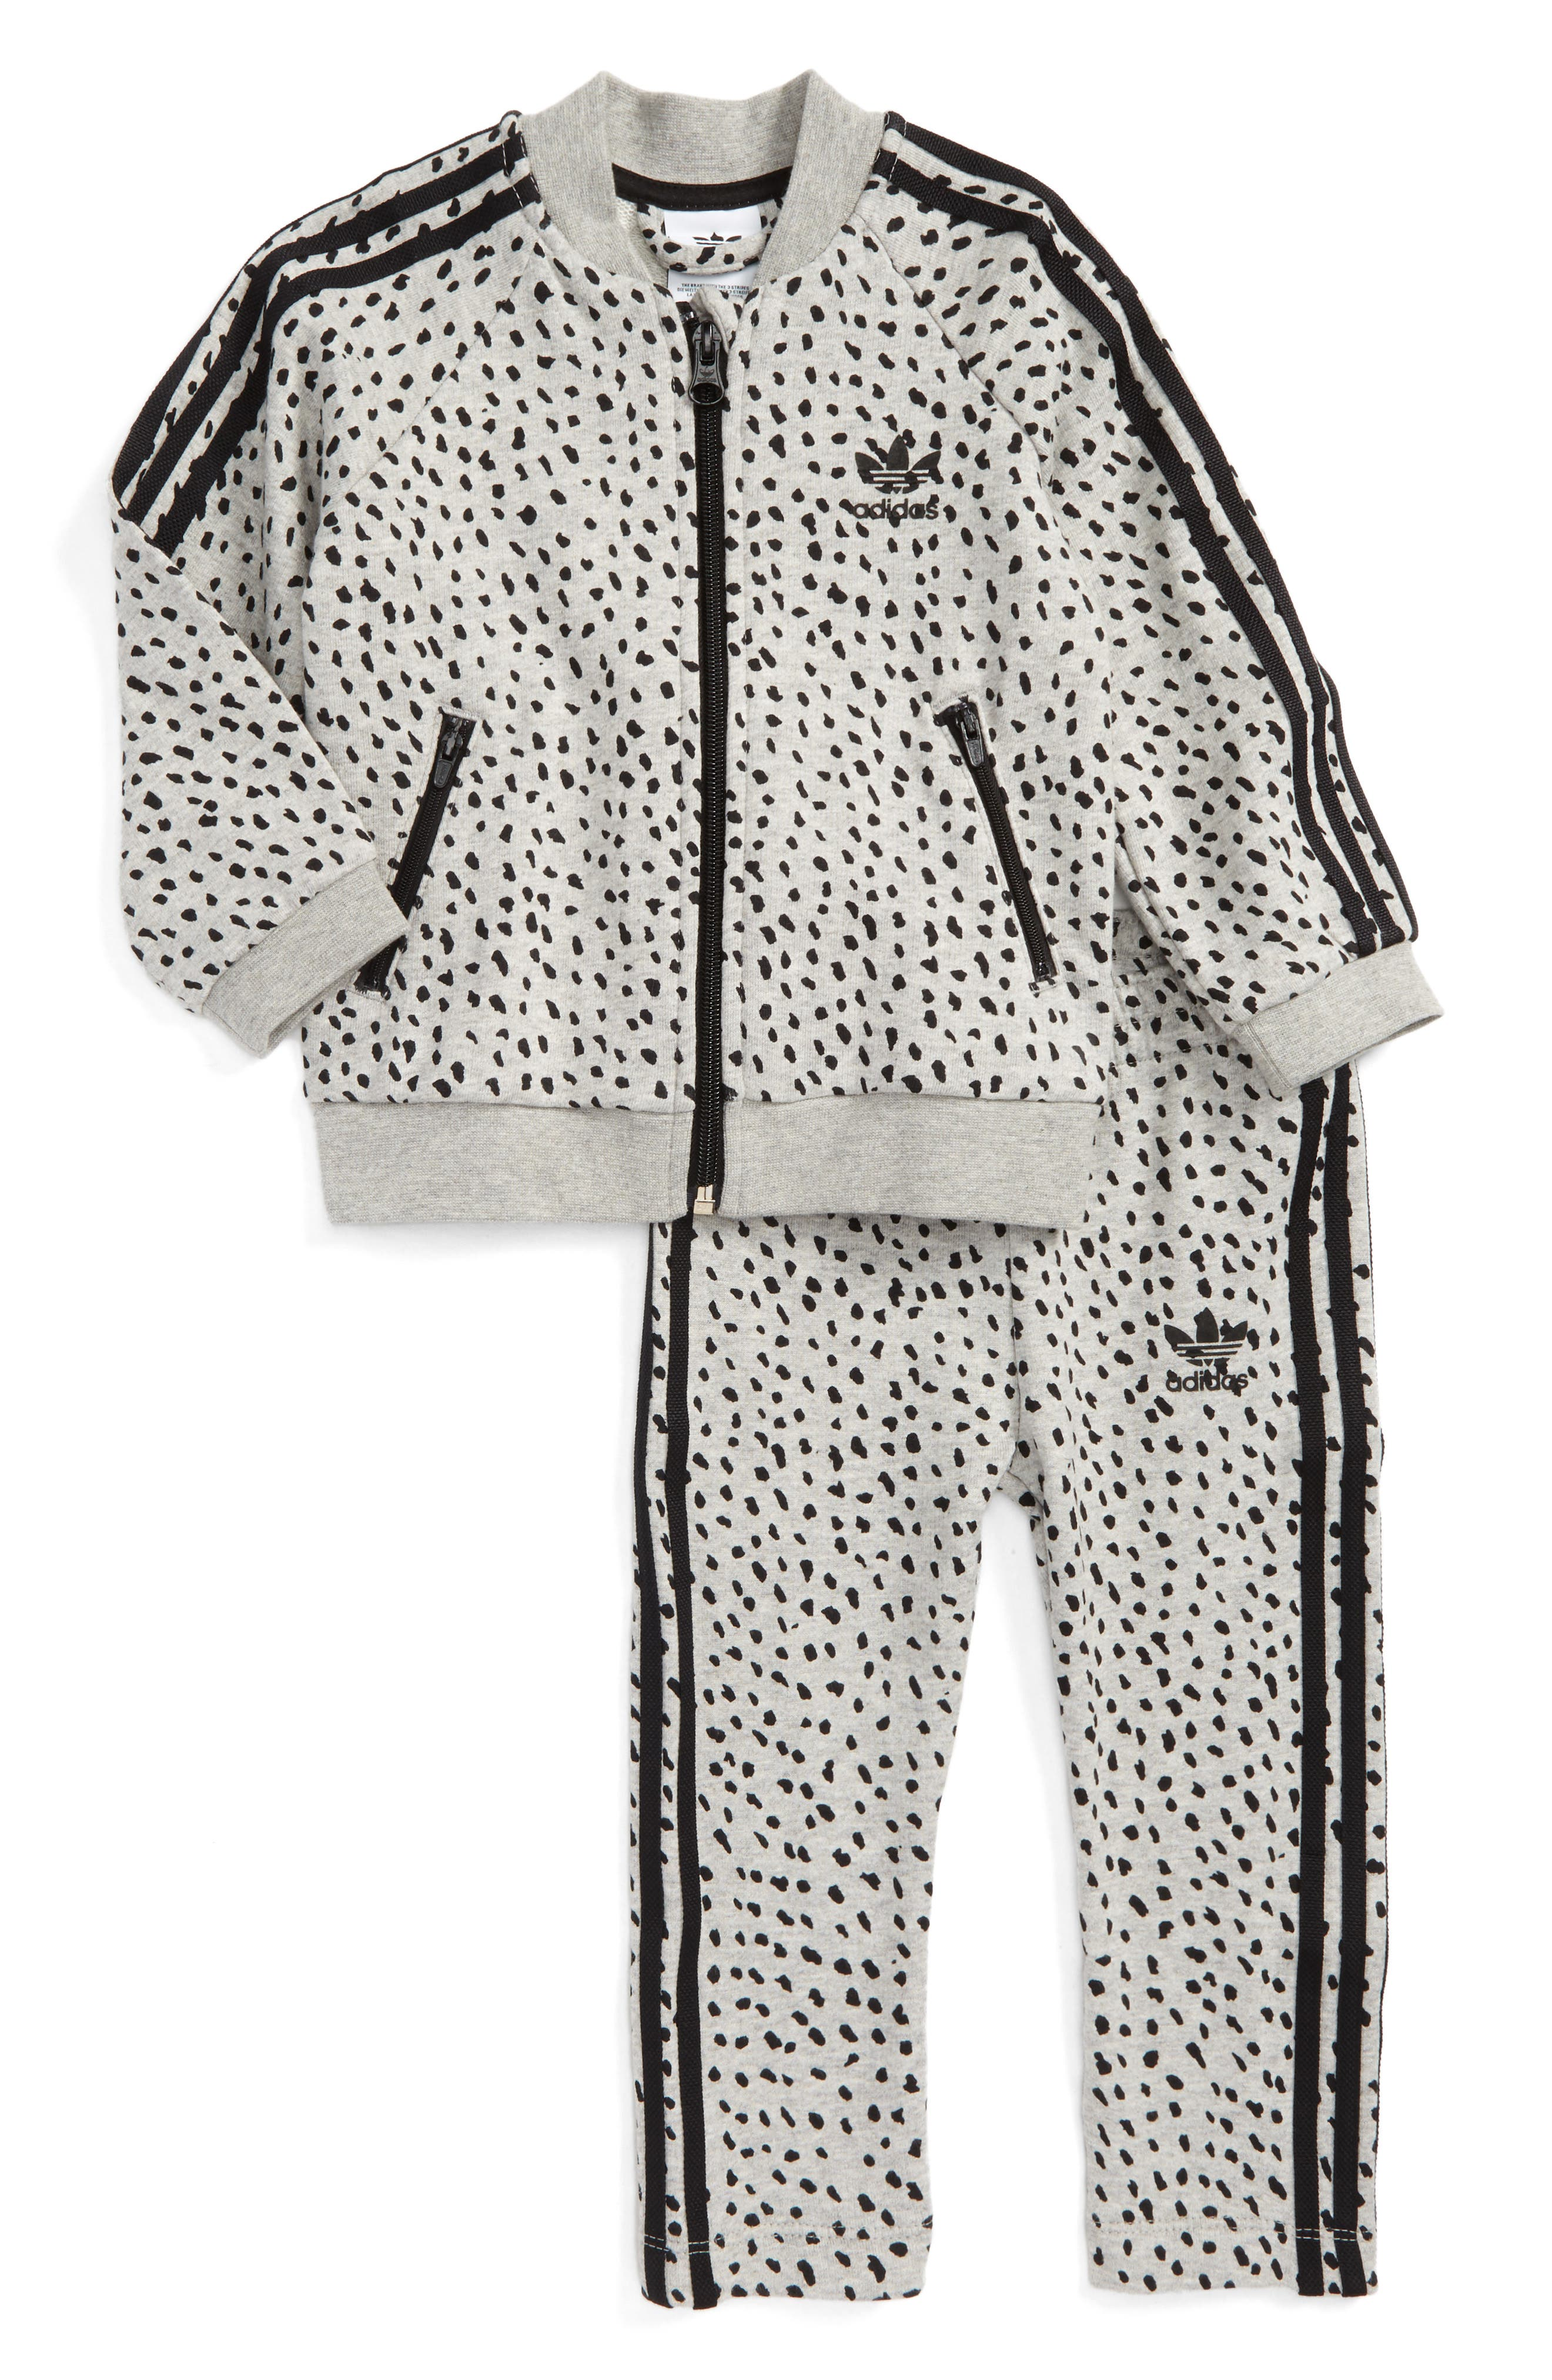 Alternate Image 1 Selected - adidas Originals NMD Superstar Track Jacket & Pants Set (Baby)